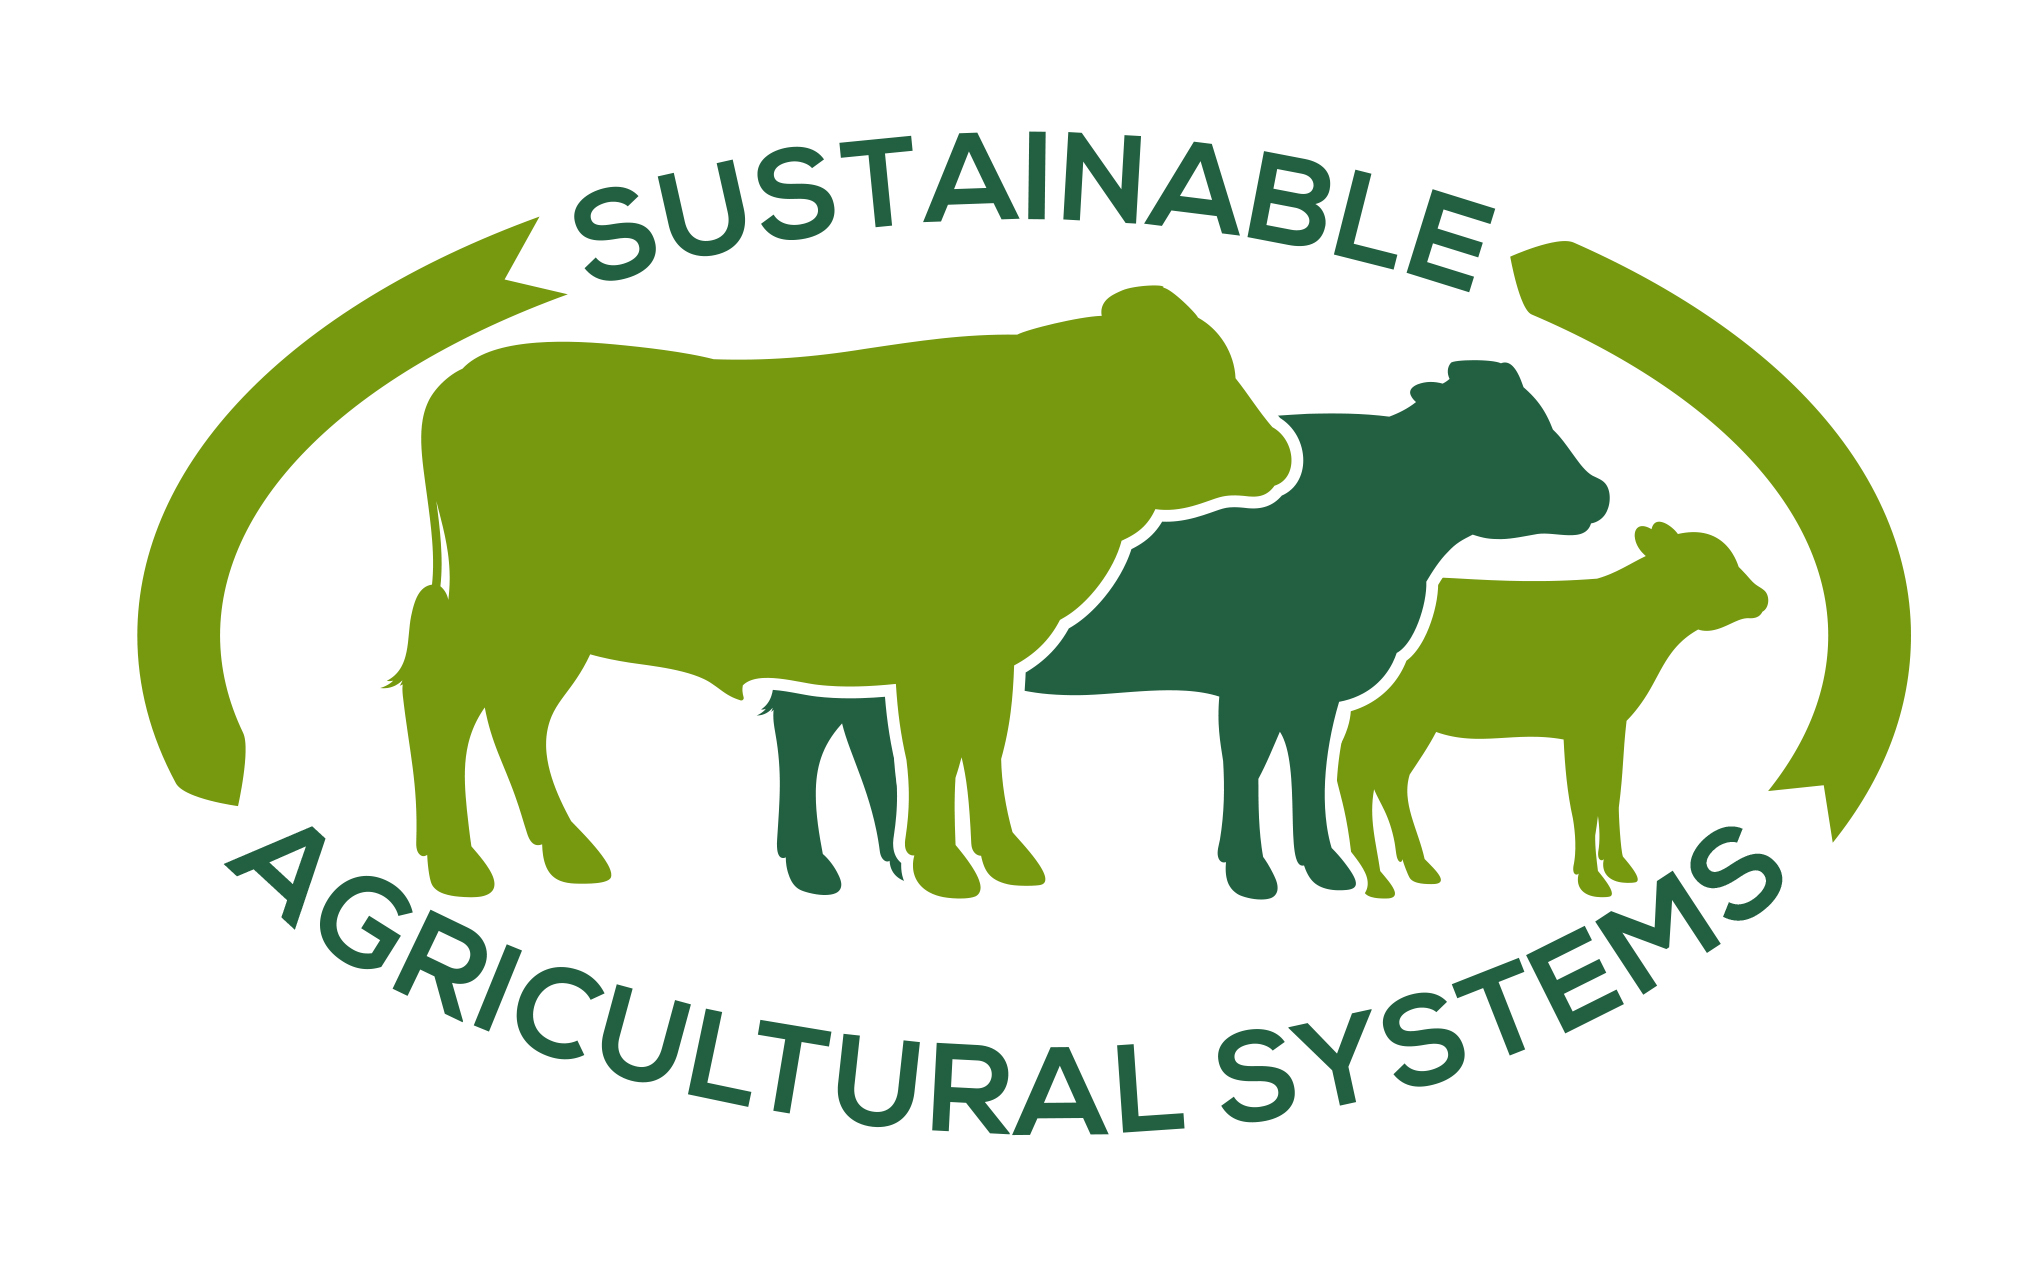 Sustainable Agricultural Systems Ltd.